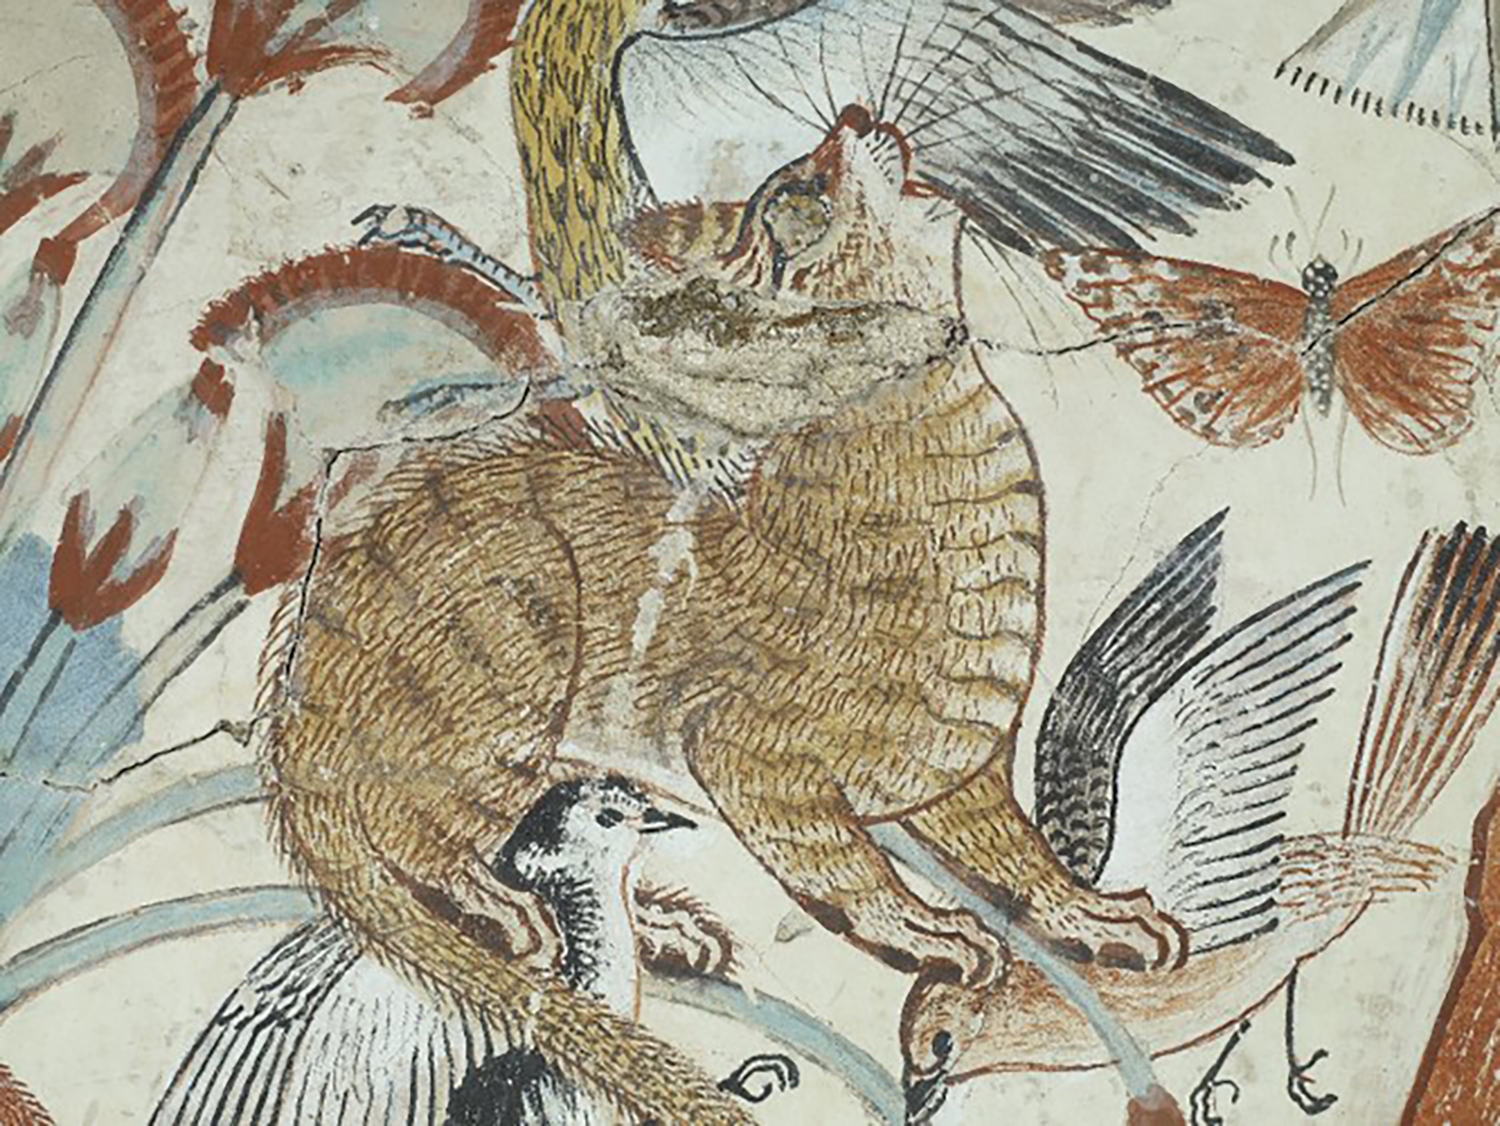 Figure 6: A detail of a hunting cat from the tomb of Nebamun, Dynasty 18 (ca. 1350 BCE). British Museum EA37977. Image courtesy of the British Museum.